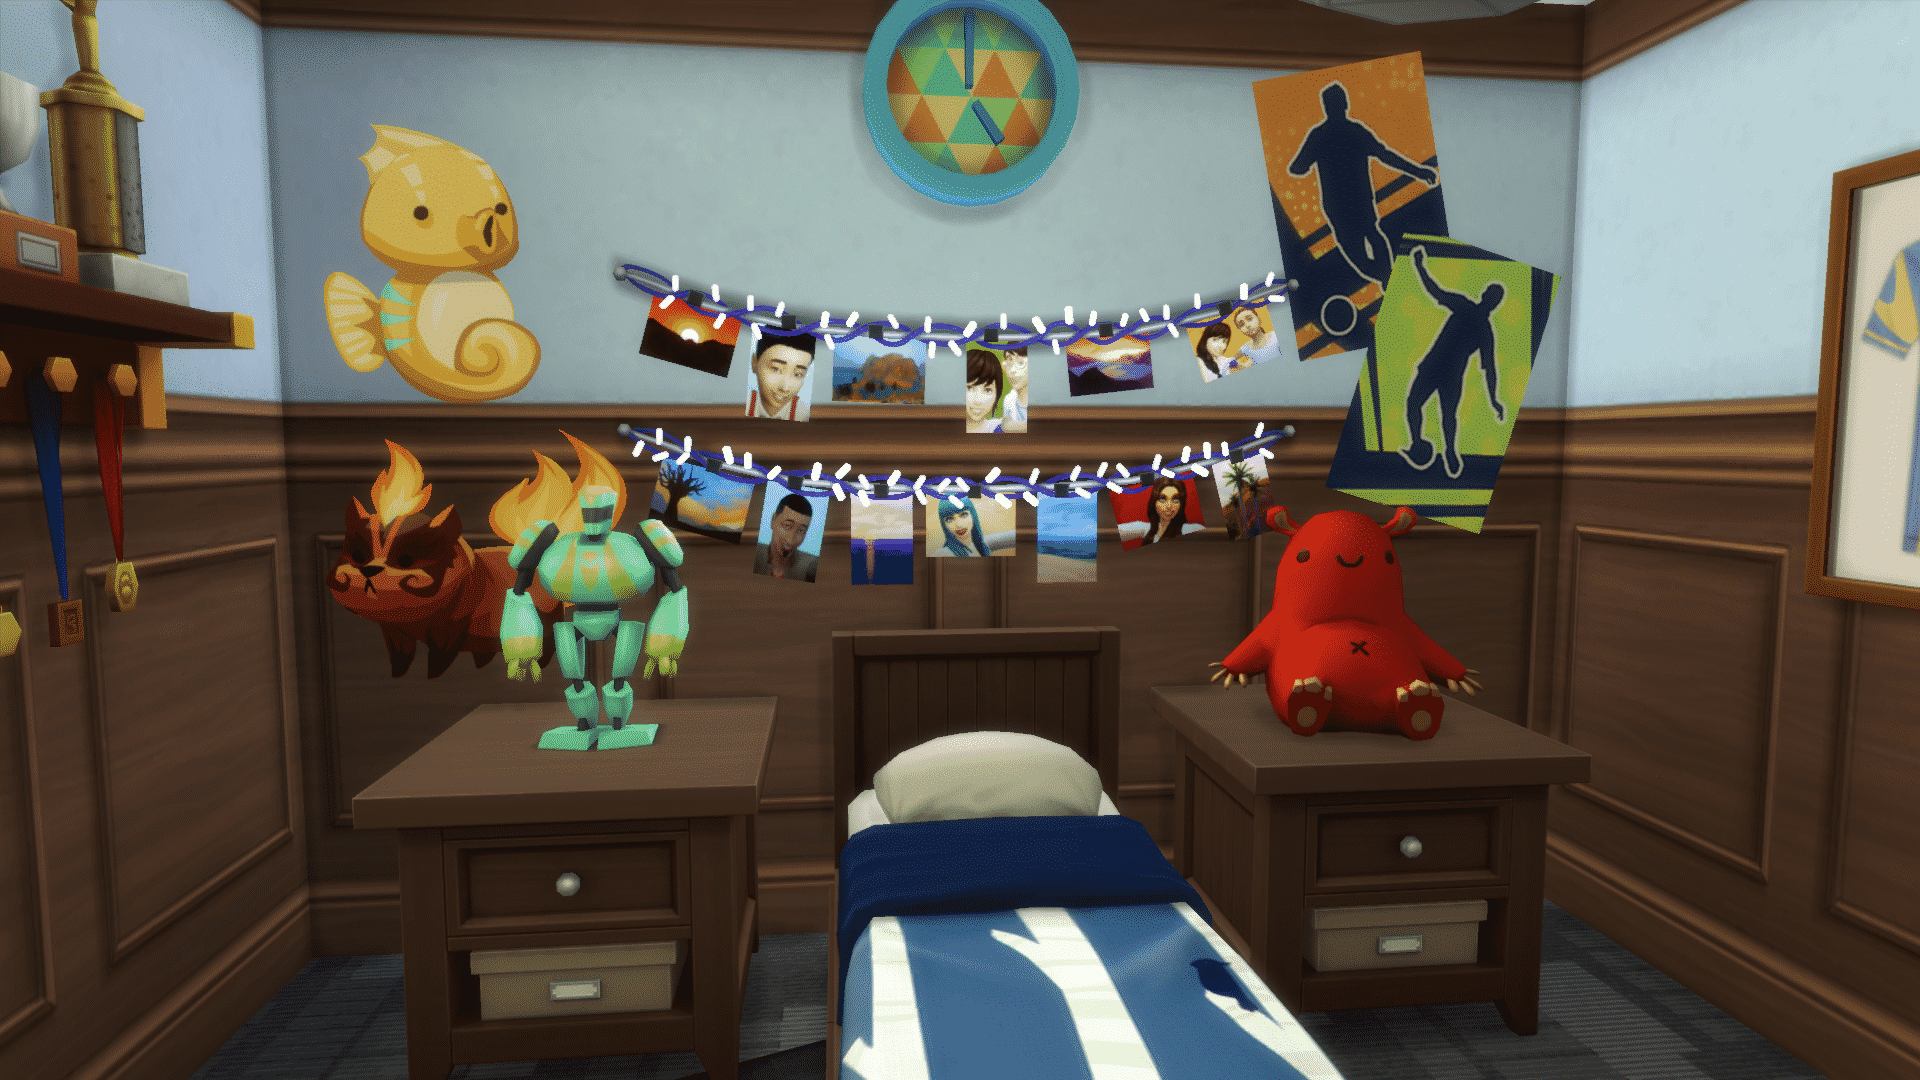 The sims 4 kids room stuff decorating your kids bedroom - Stuff for your room ...